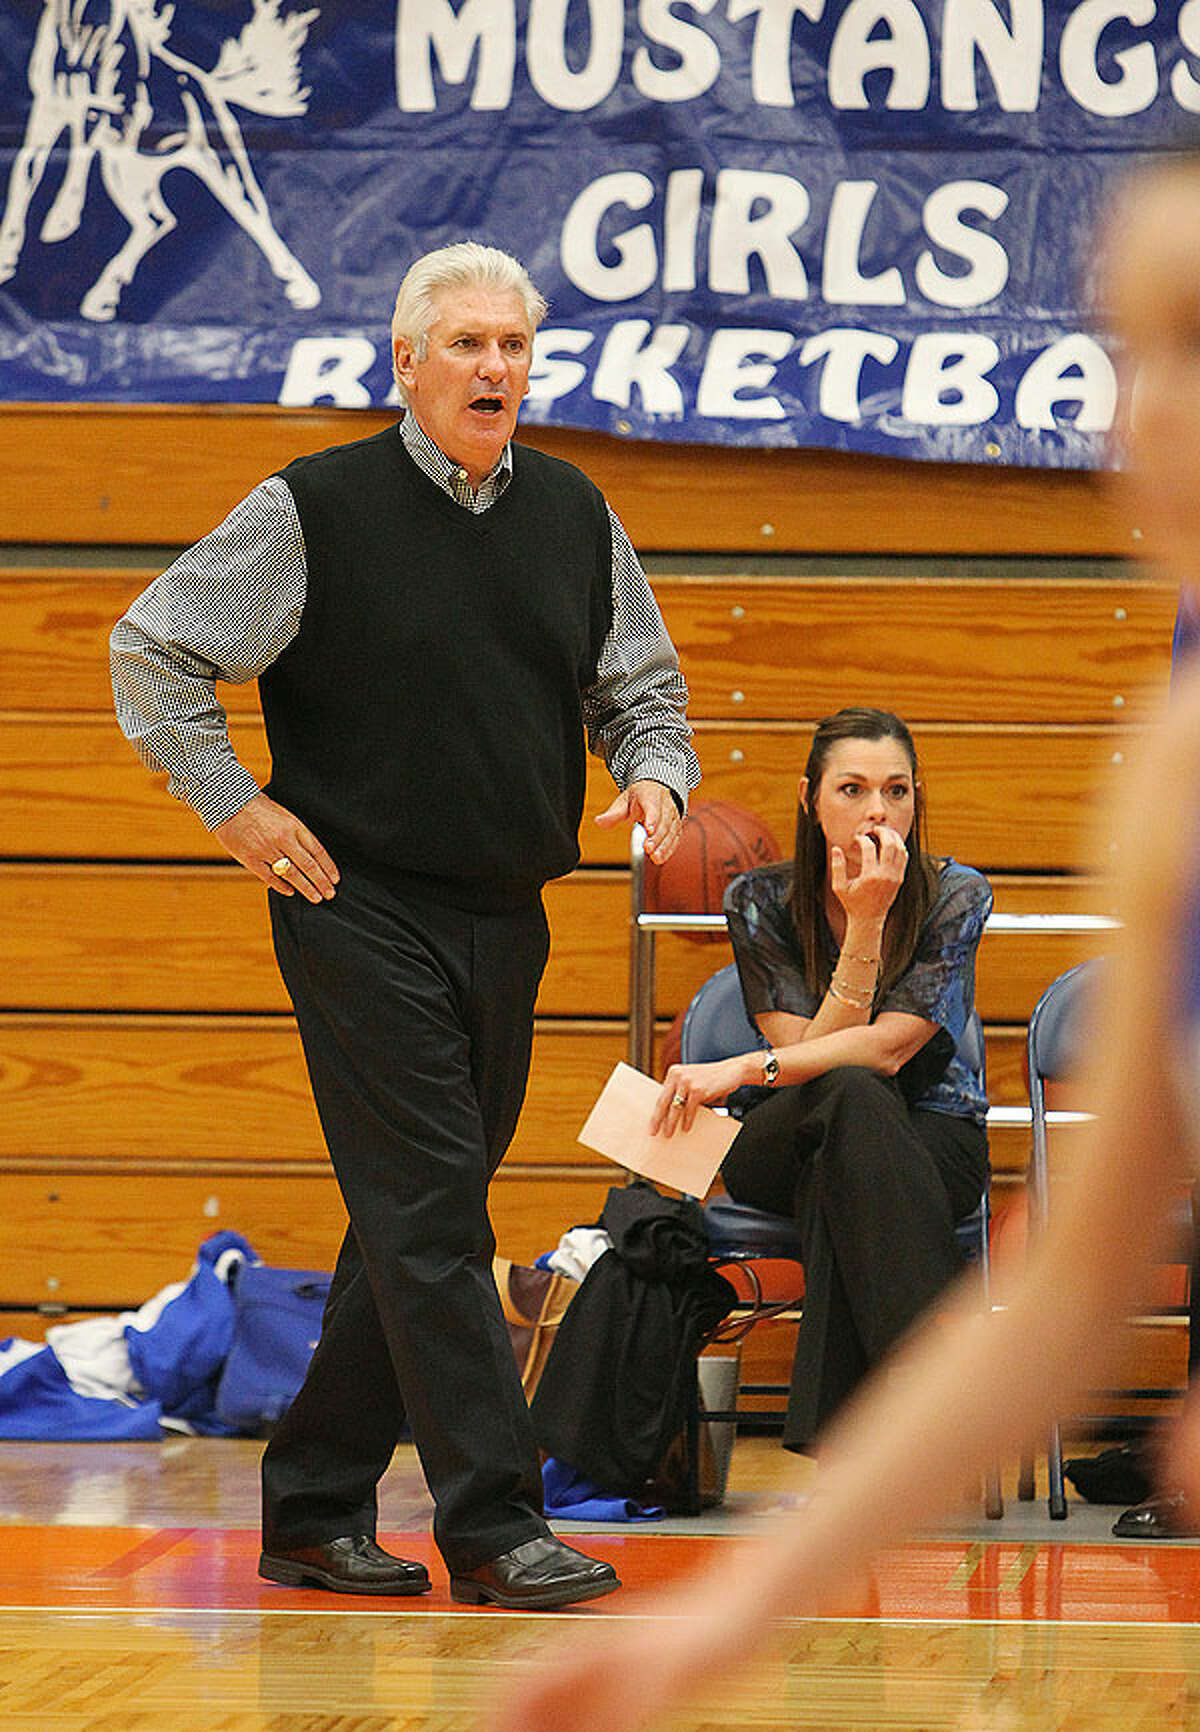 Jay coach Mike Floyd (left) gives directions in the closing moments of their game against Stevens in girls basketball at Paul Taylor Fieldhouse on Tuesday, Dec. 14, 2010. Jay defeated Stevens, 59-53.